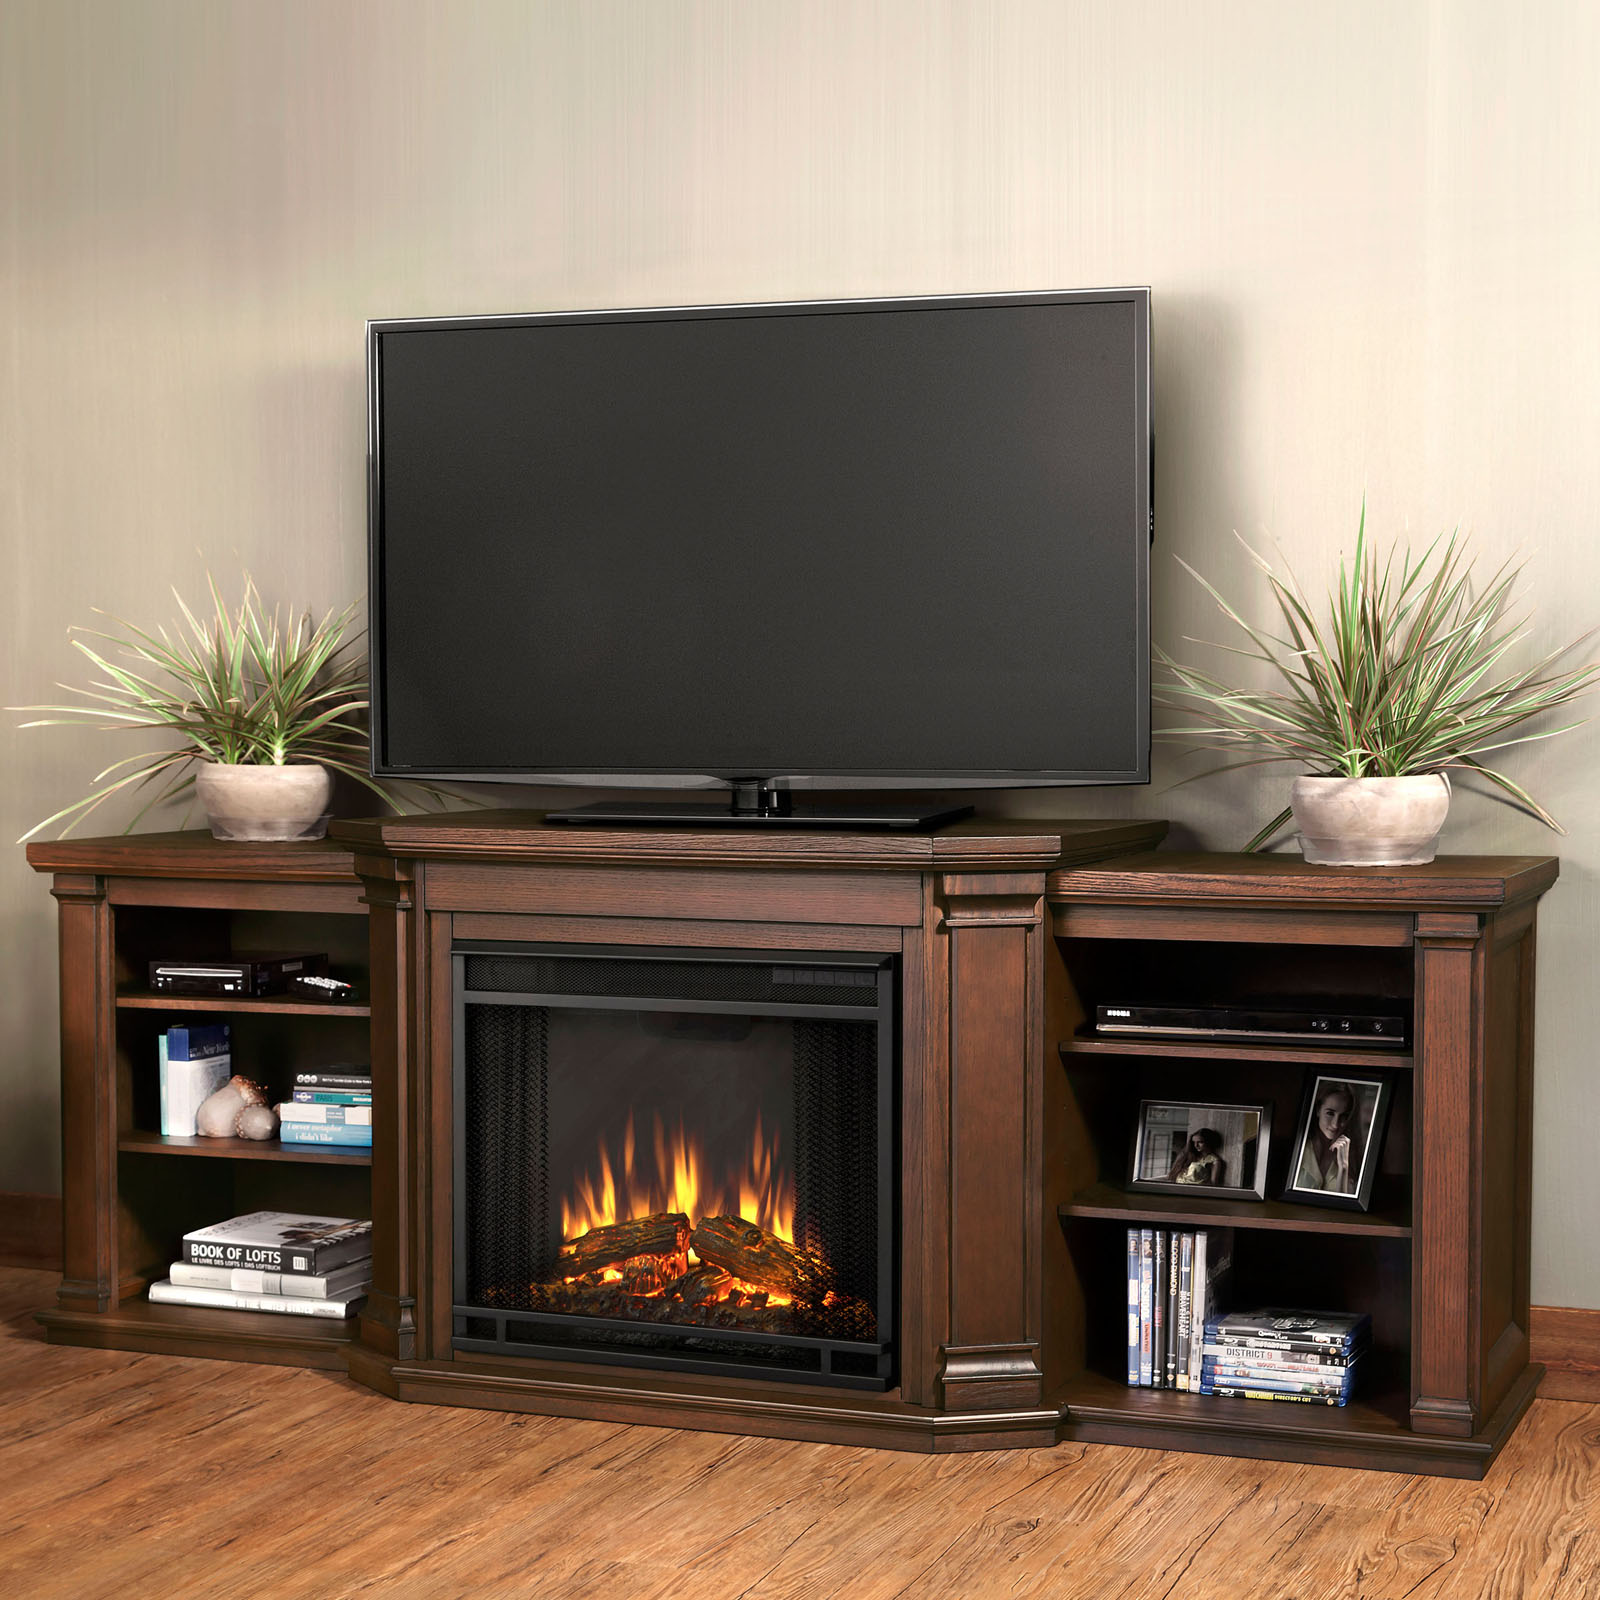 Fireplace TV Stands on Hayneedle - TV Stand With Fireplace Heaters